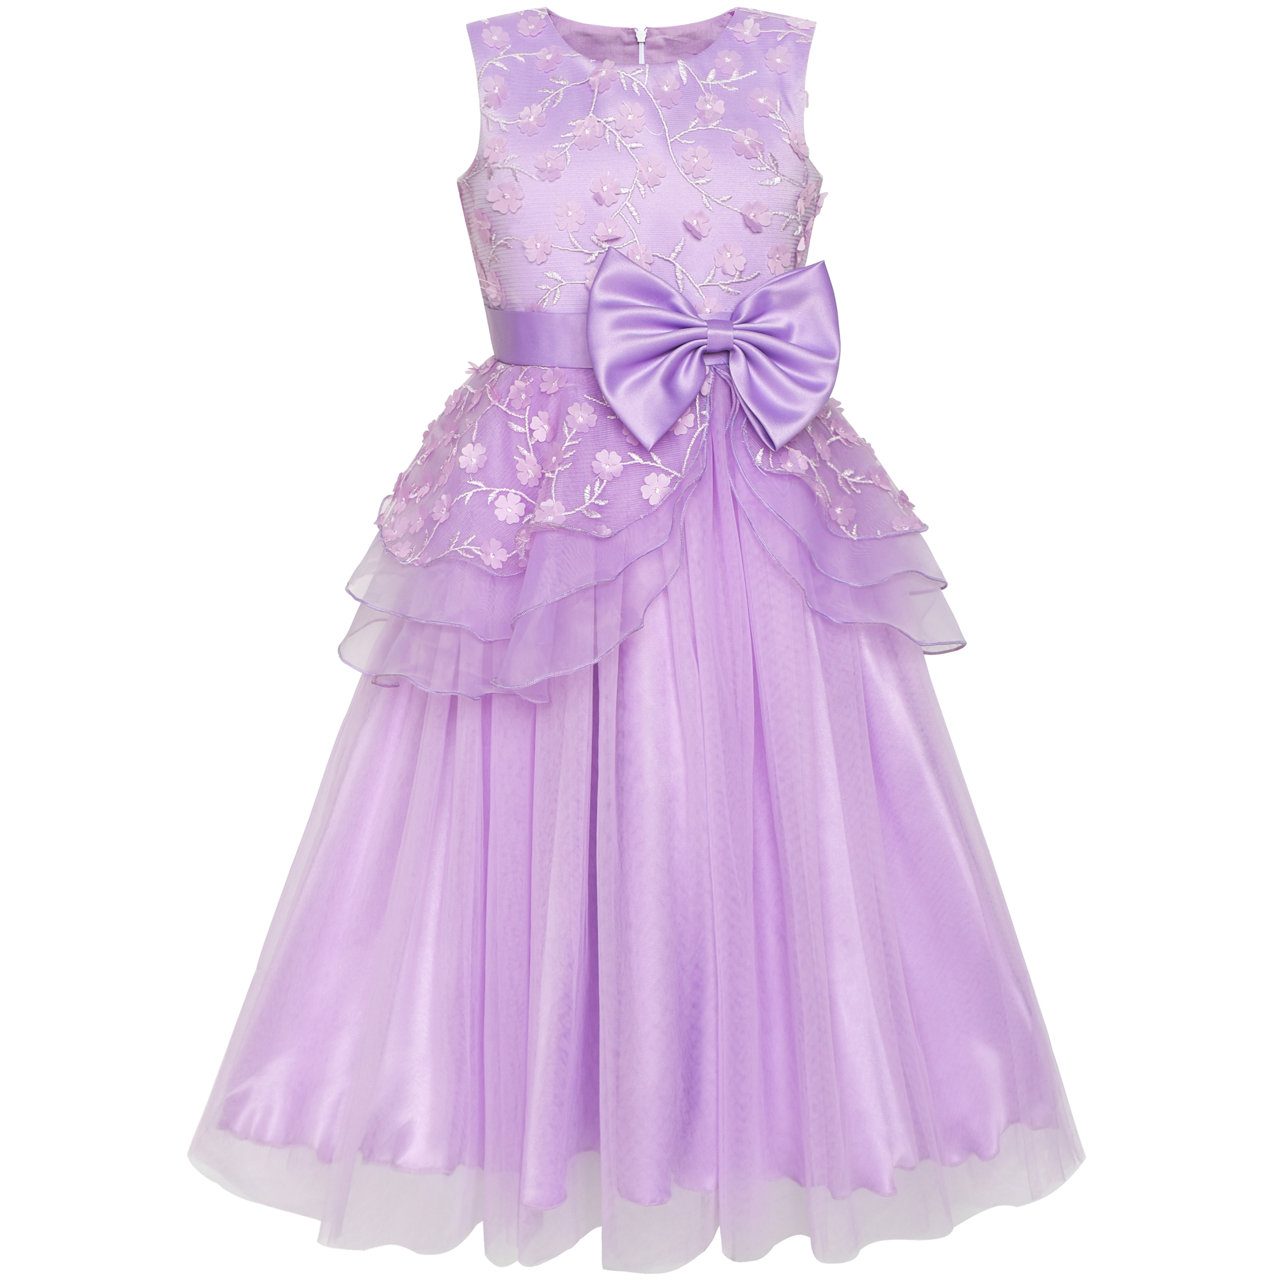 ce7b79a0daf Sunny Fashion Flower Girl Dress Hydrangea Floral Fit And Flare Satin